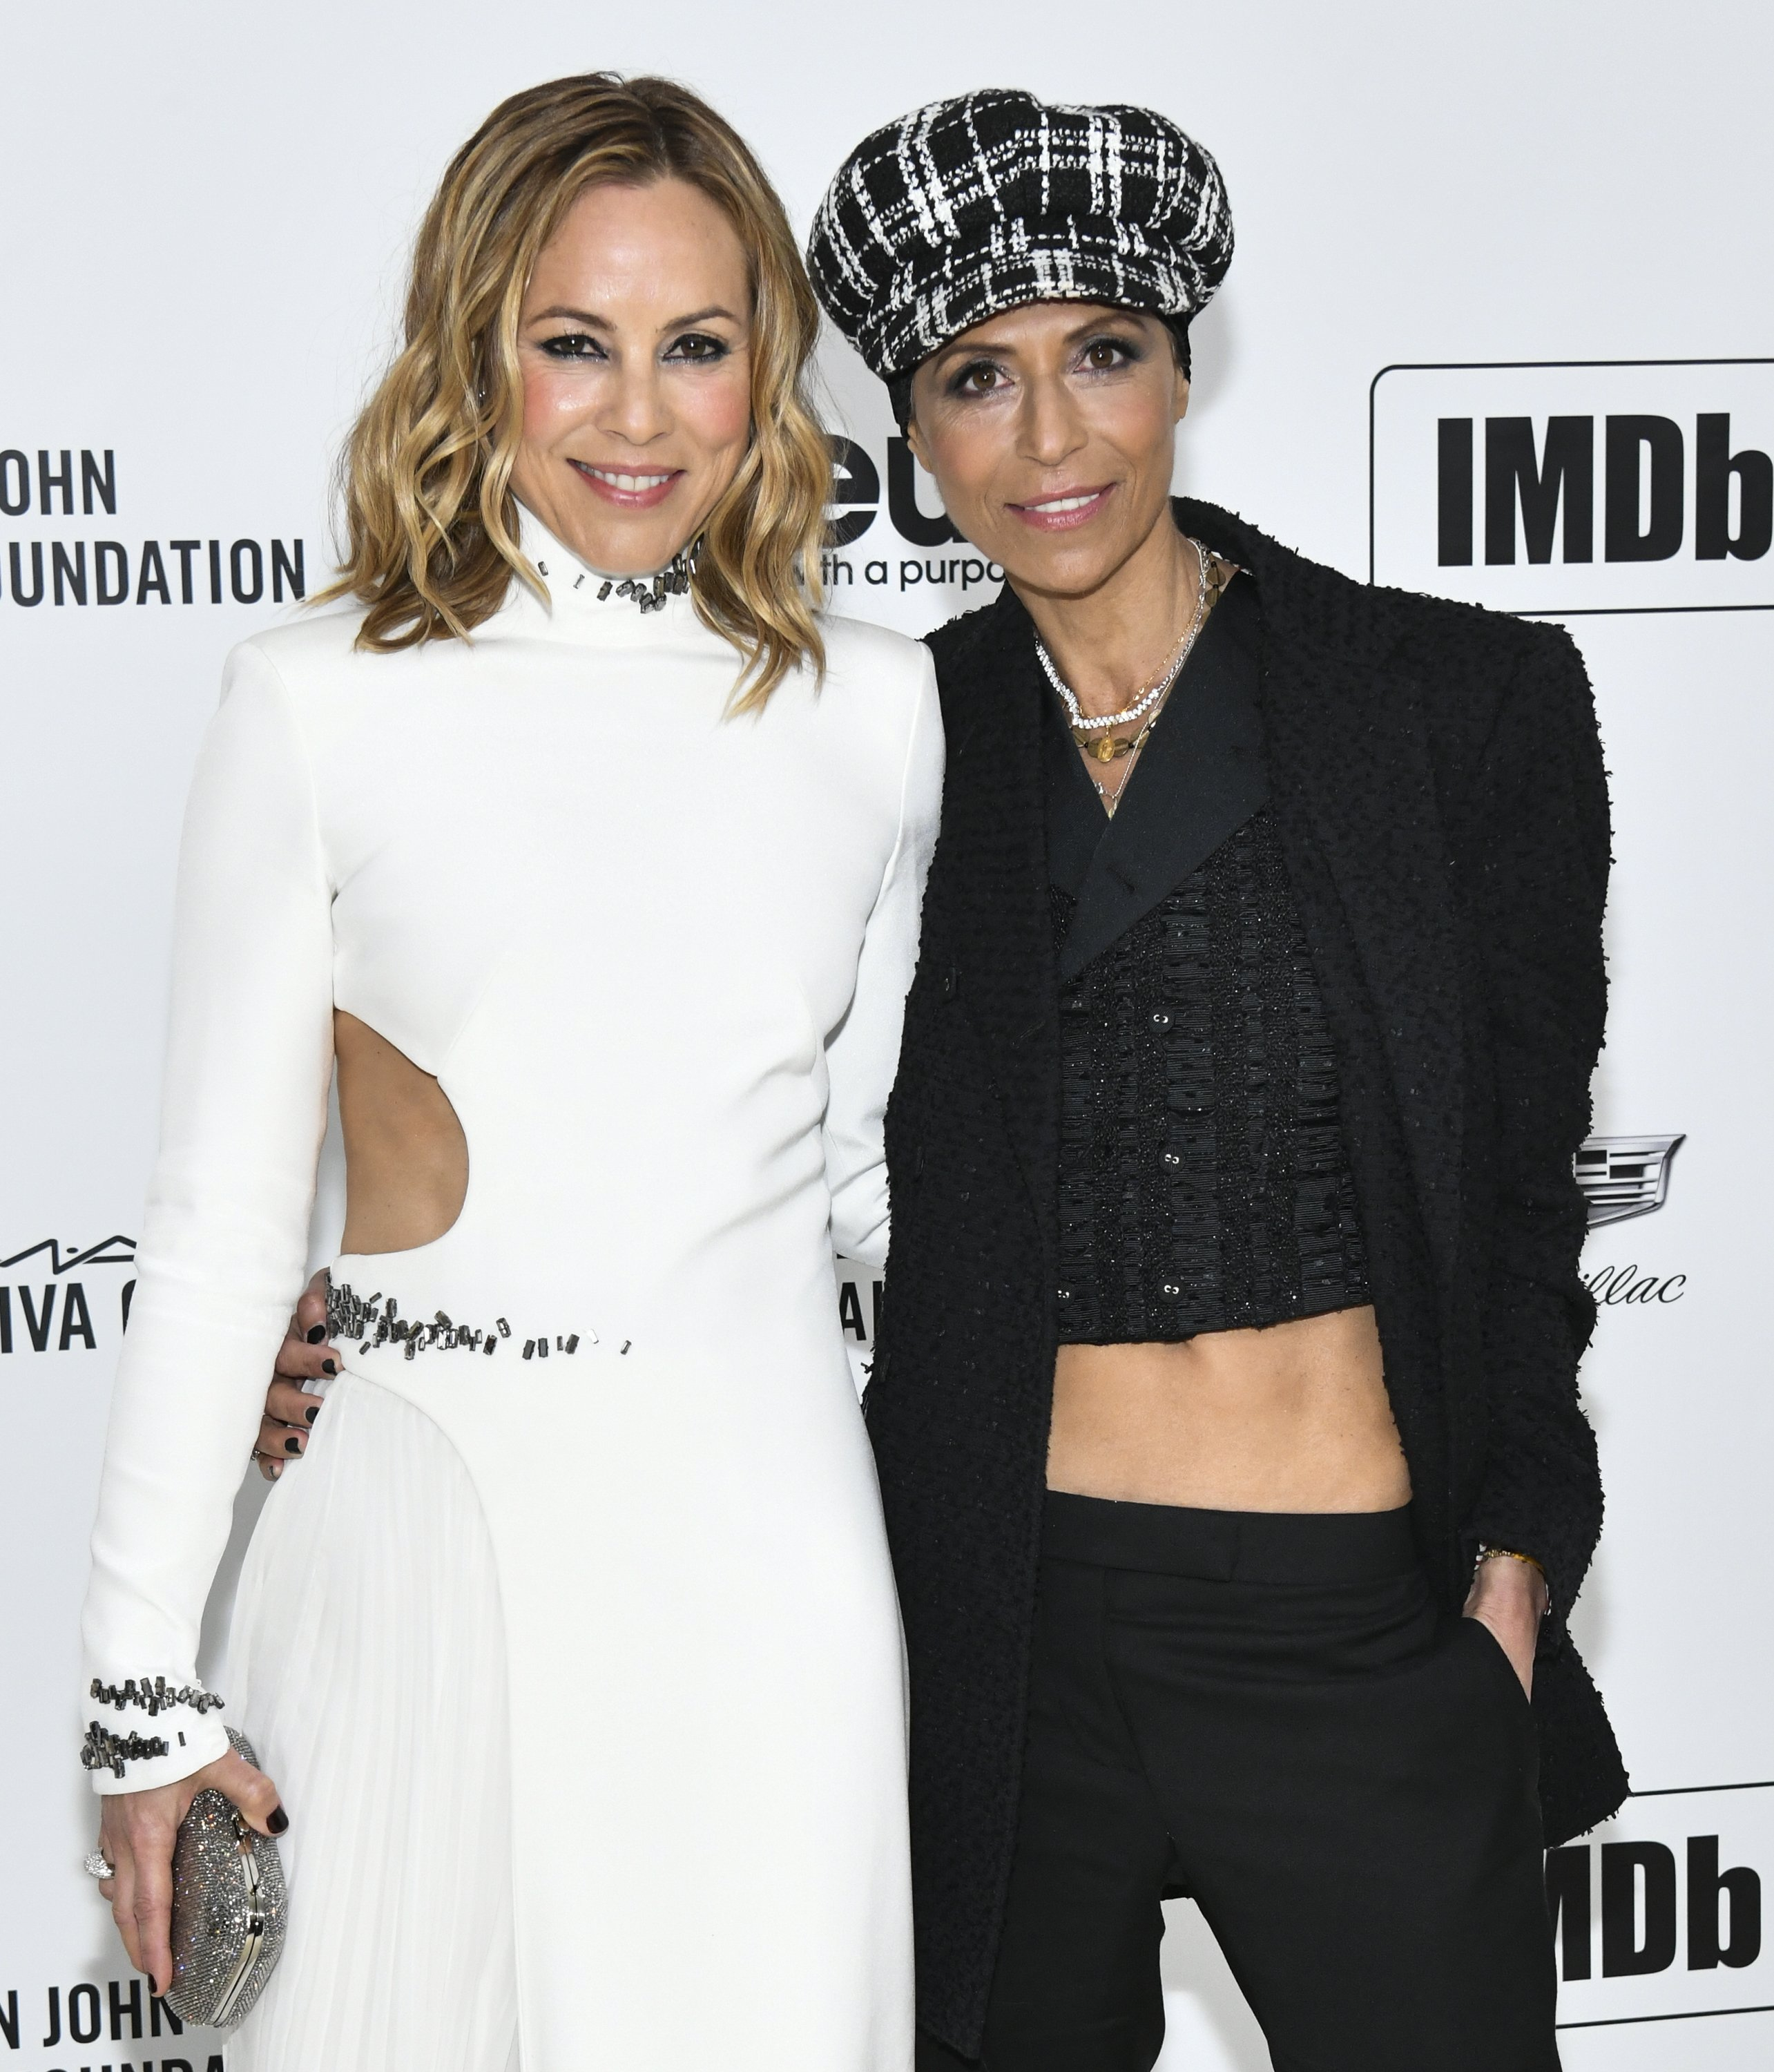 Maria Bello and Dominique Crenn attend the 28th Annual Elton John AIDS Foundation Academy Awards Viewing Party on February 09, 2020, in West Hollywood, California. | Source: Getty Images.